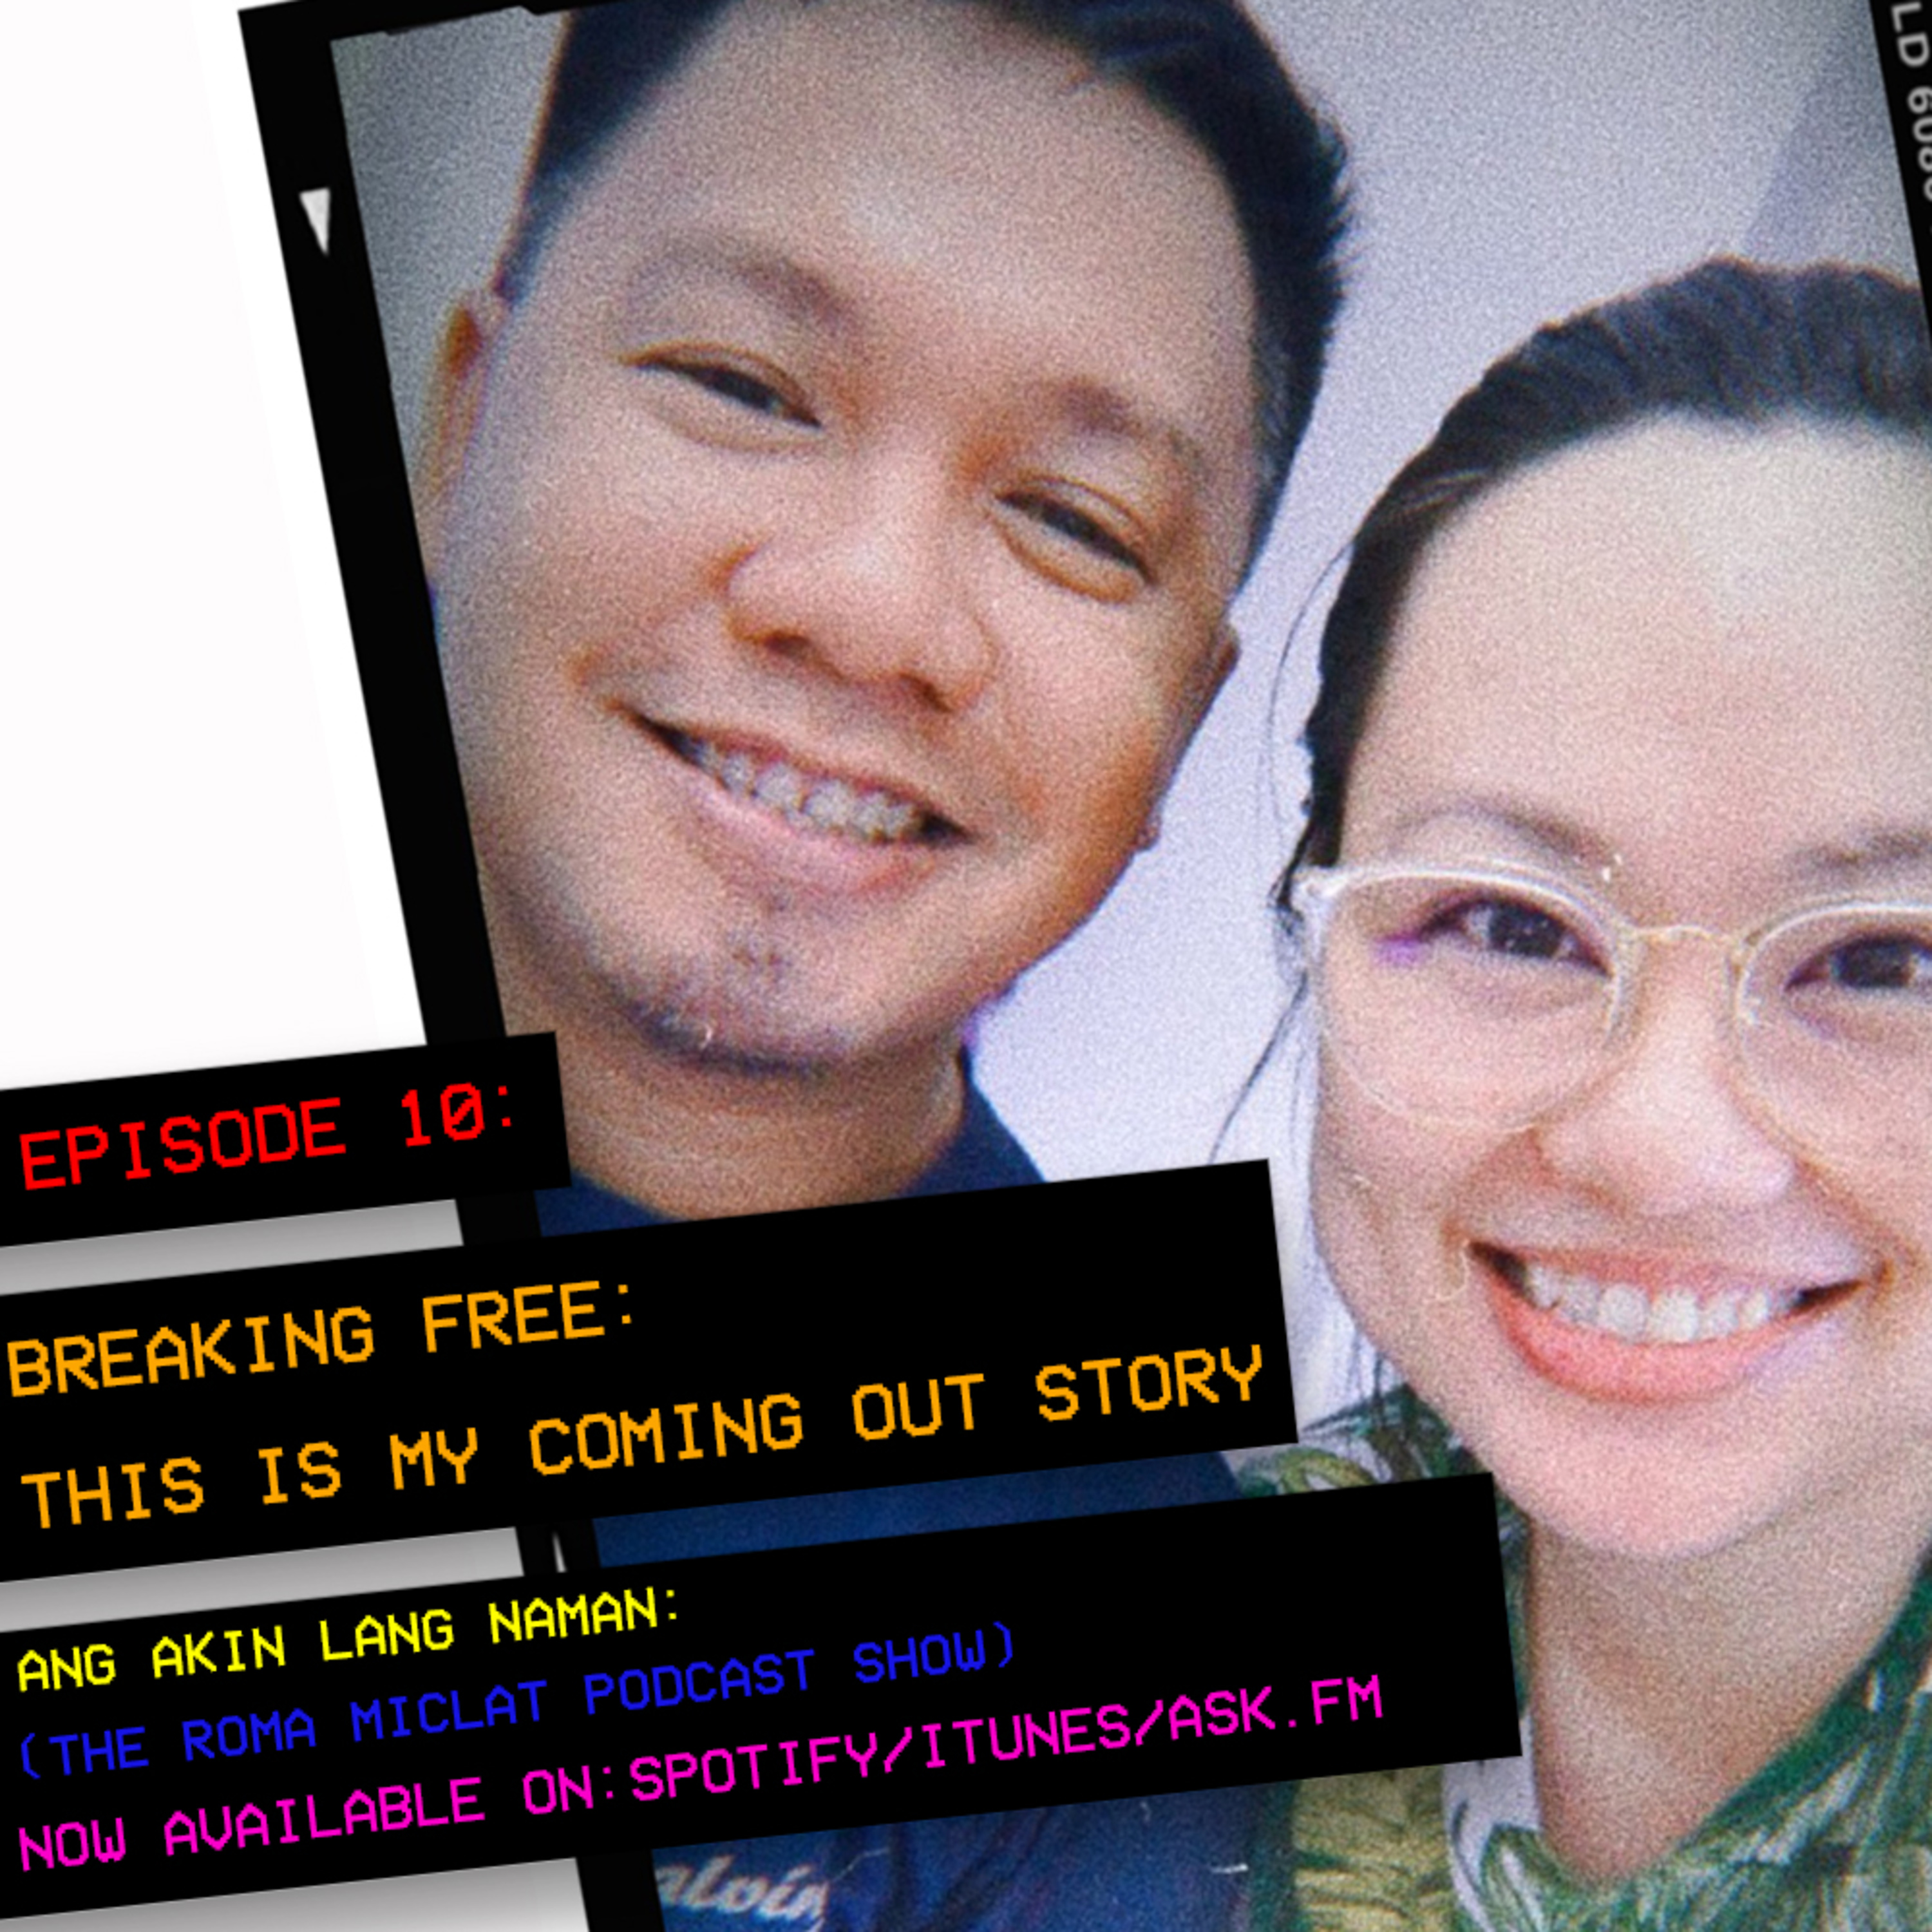 EPISODE 10 - Breaking Free: This is My Coming Out Story